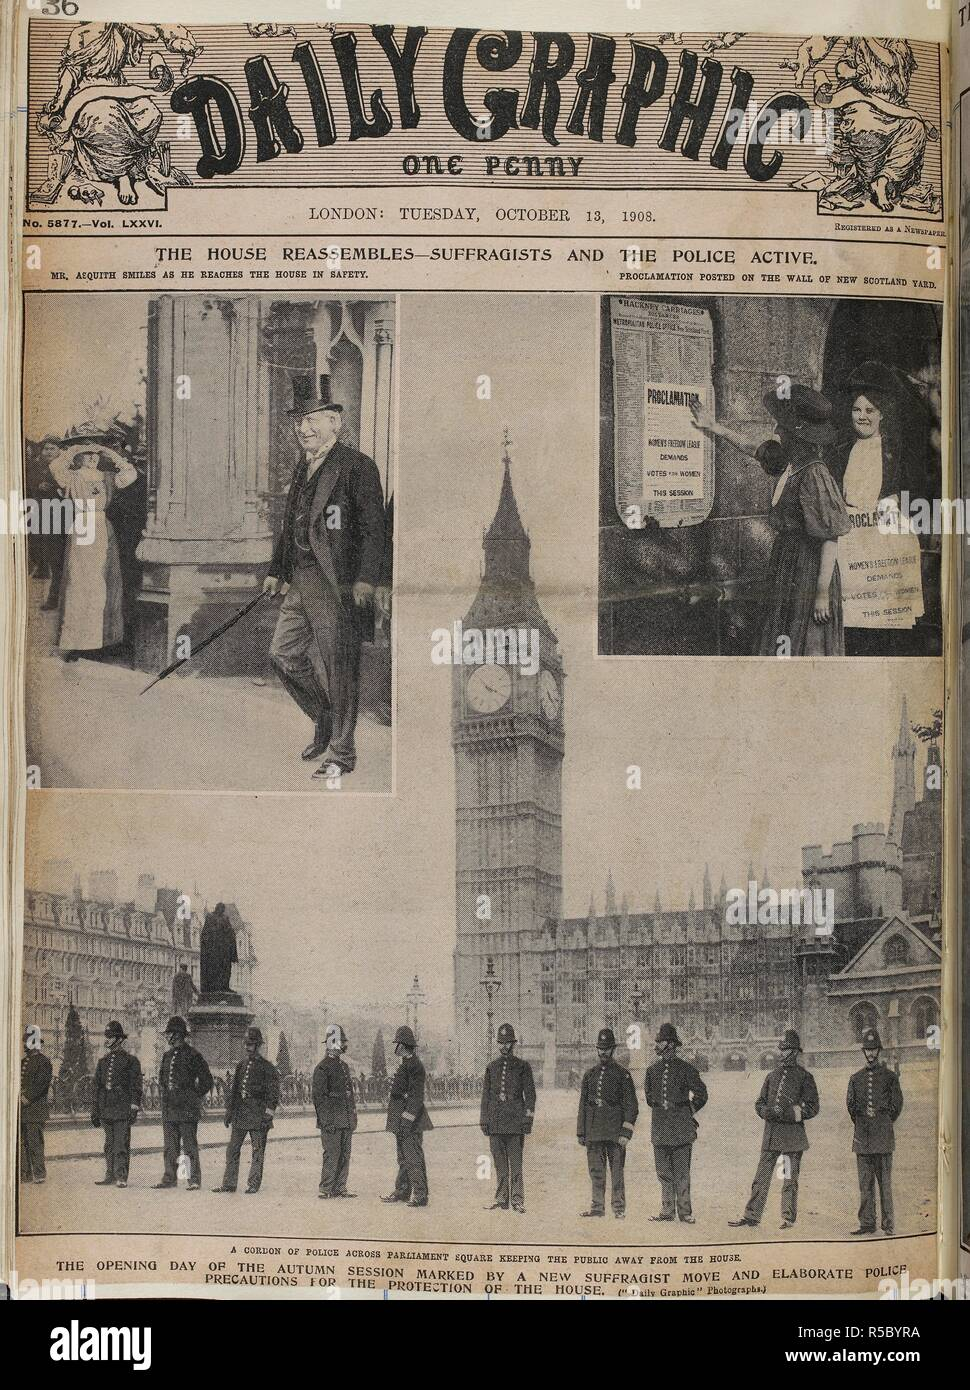 Front cover of the Daily Graphic.  The House reassembles - suffragists and the police active.  The opening day of the autum session marked by a new suffragist move and elaborate precautions for the protection of the house.  . [A collection of press cuttings, pamphlets, leaflets and letters mainly relating to the movement for women's suffrage in England, formed and annotated by M. Arncliffe Sennett.]  . London, 1908. Source: C.121.g.1, vol.LXXVI. no.5877. October 13, 1908. - Stock Image